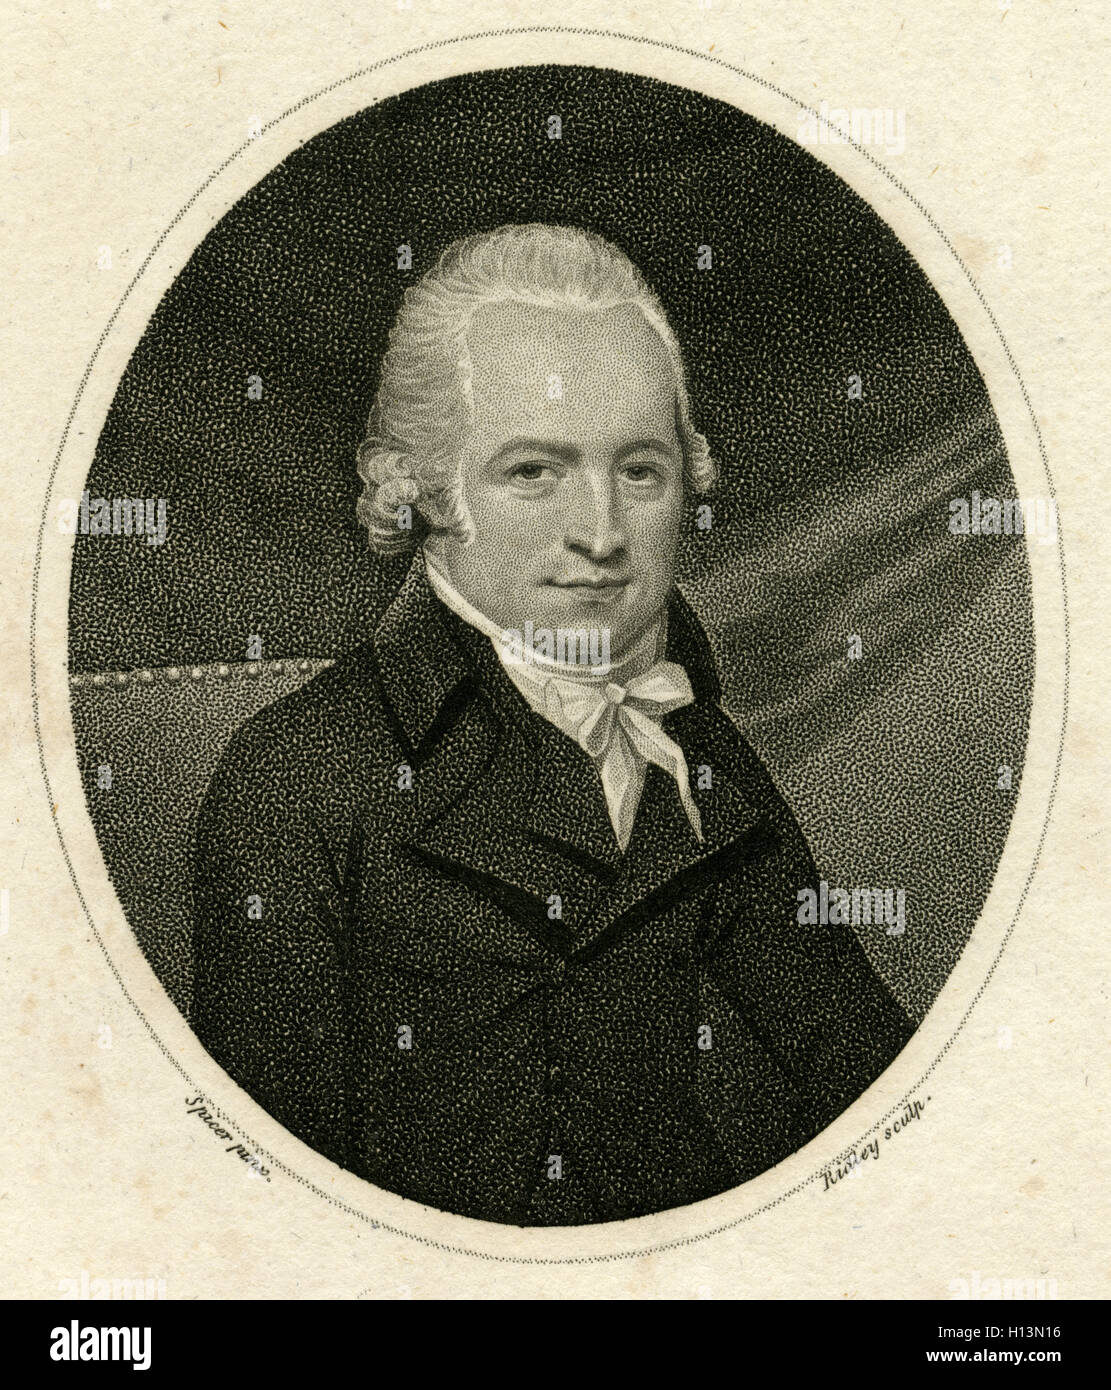 Antique 1801 engraving, George Downing, Esq. George Downing (1762-1800) of Lincoln's Inn was a barrister, called - Stock Image